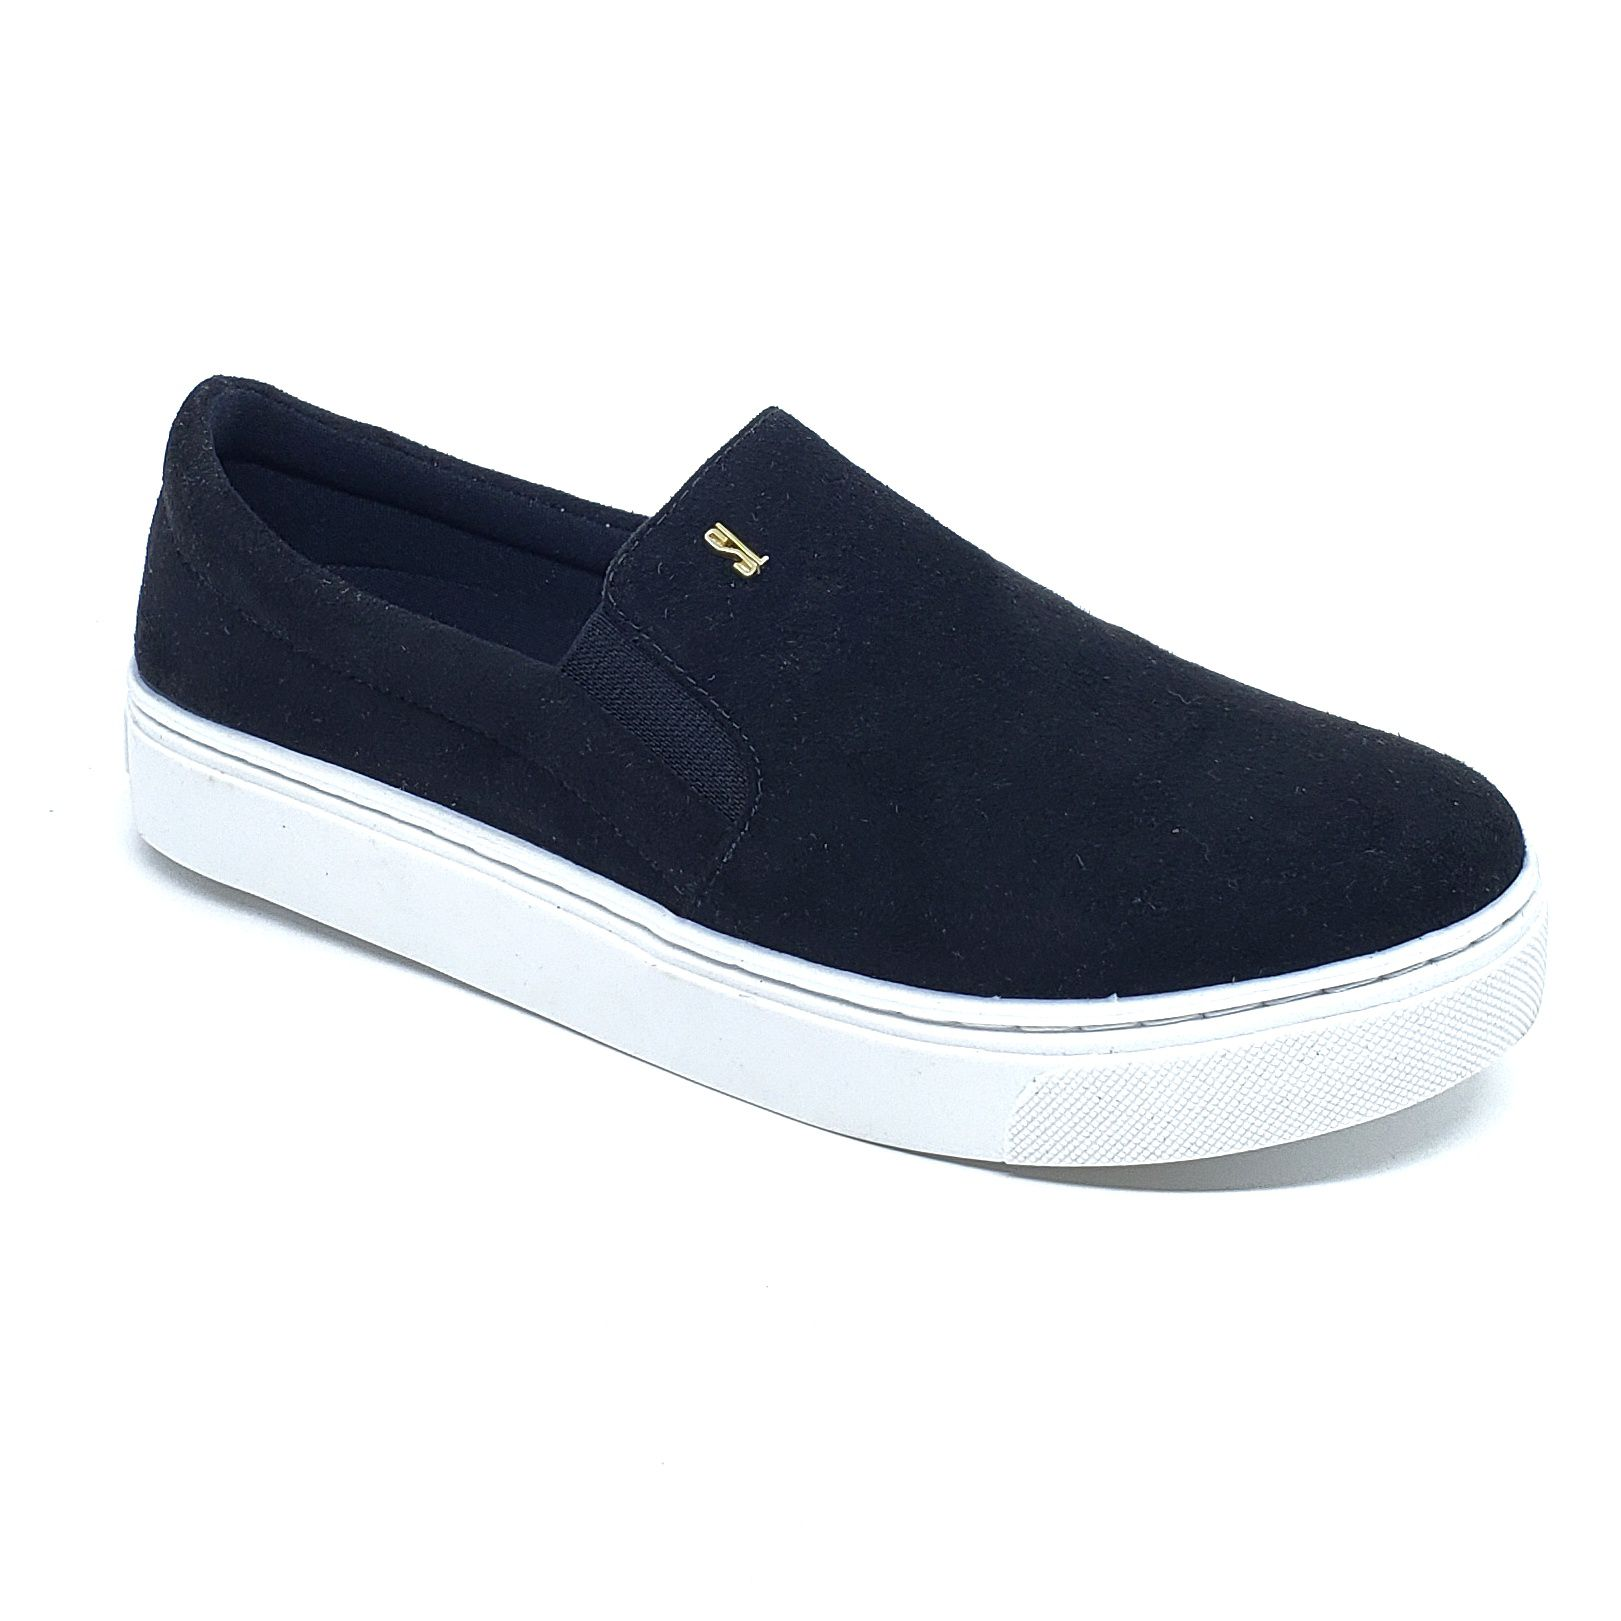 Santa Lolla Tênis Slip On Suede